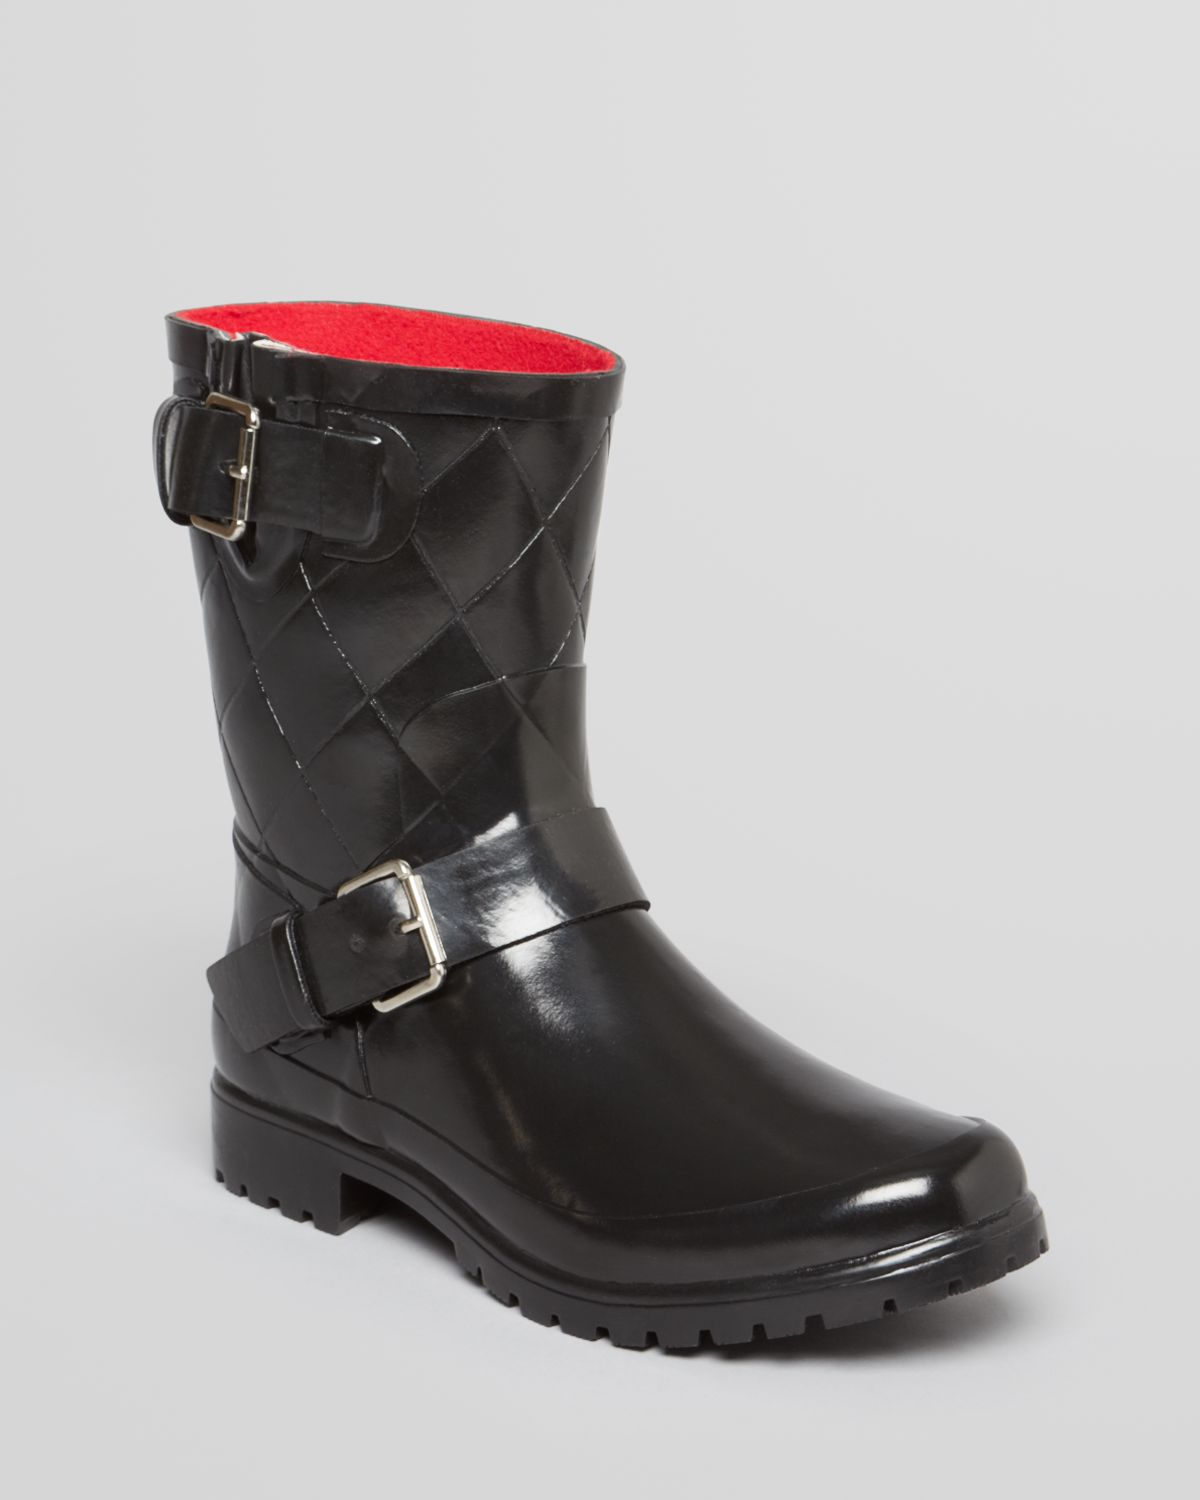 Sperry Top Sider Moto Rain Boots Falcon Quilted In Black